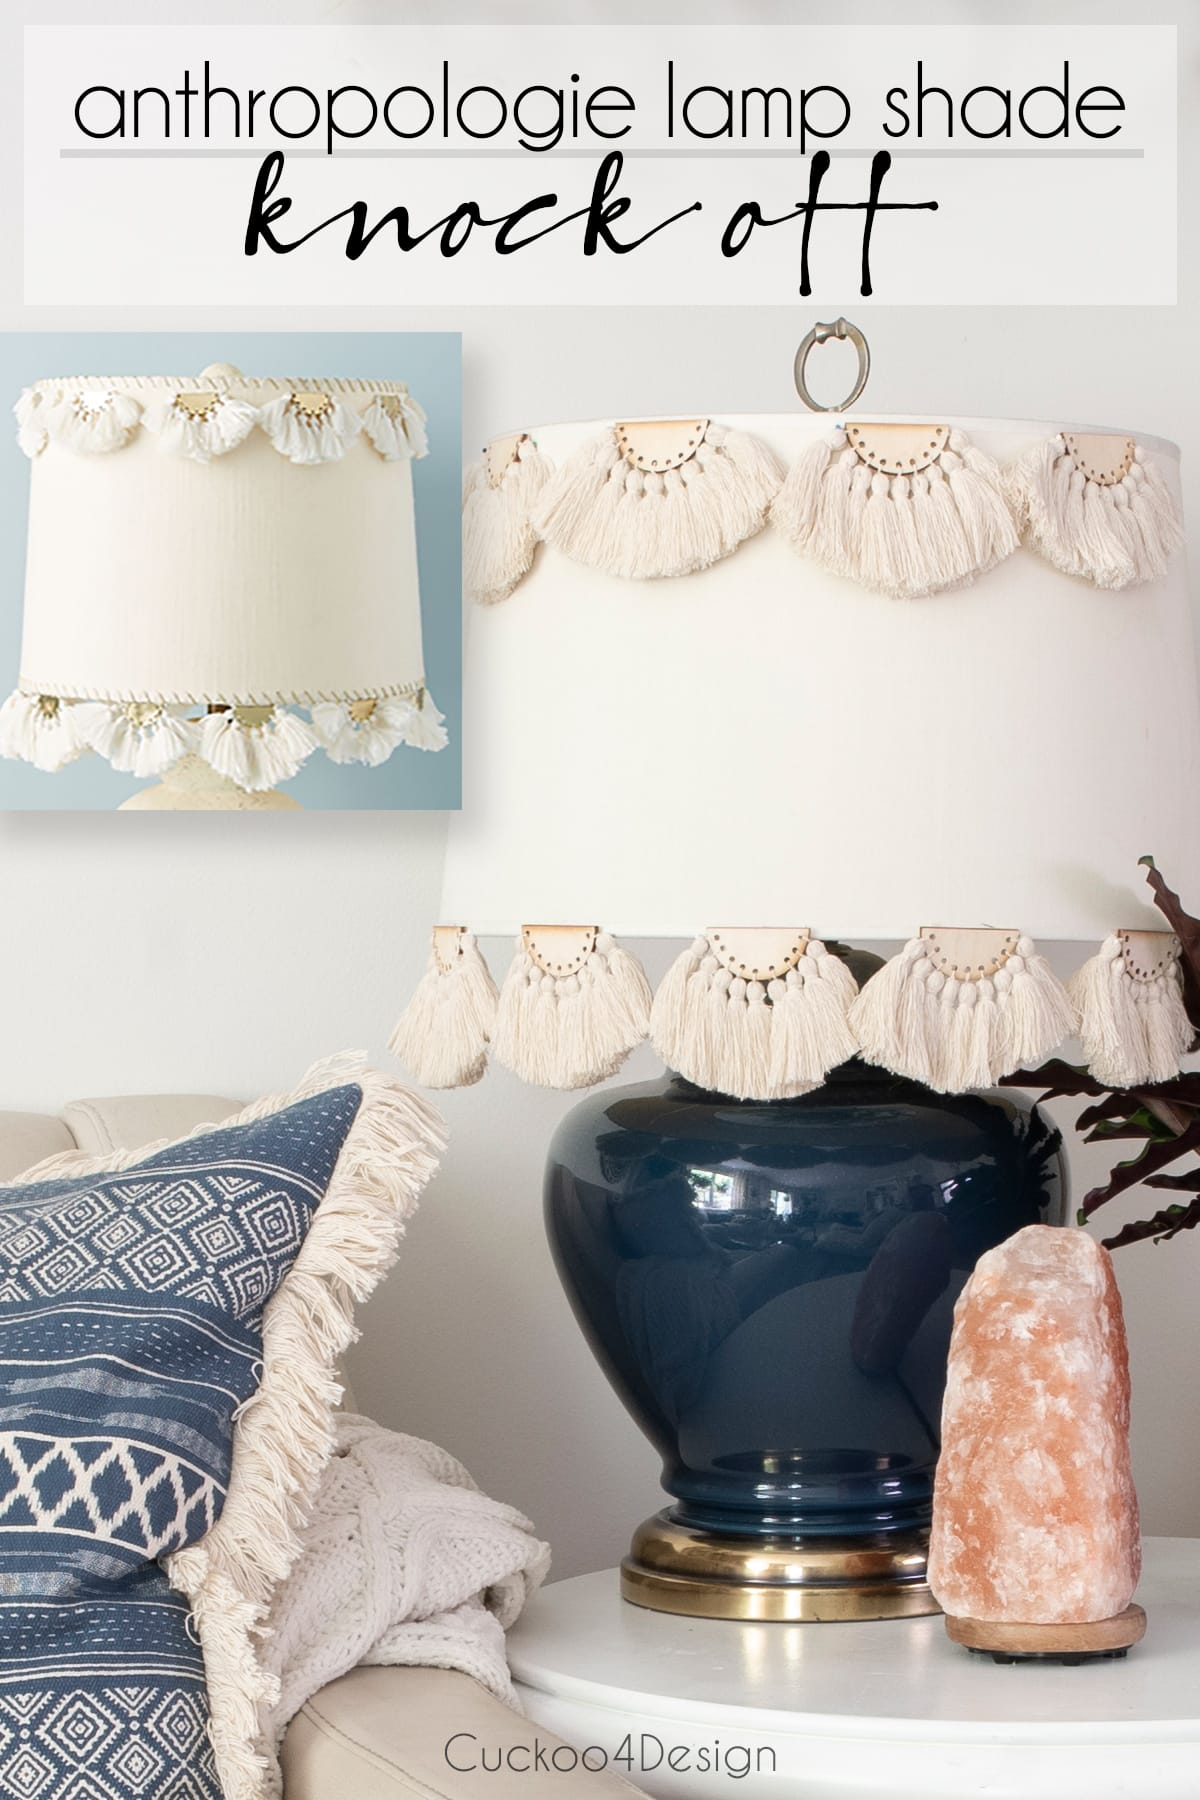 half-moon tassel embellished anthropology lampshade knock off